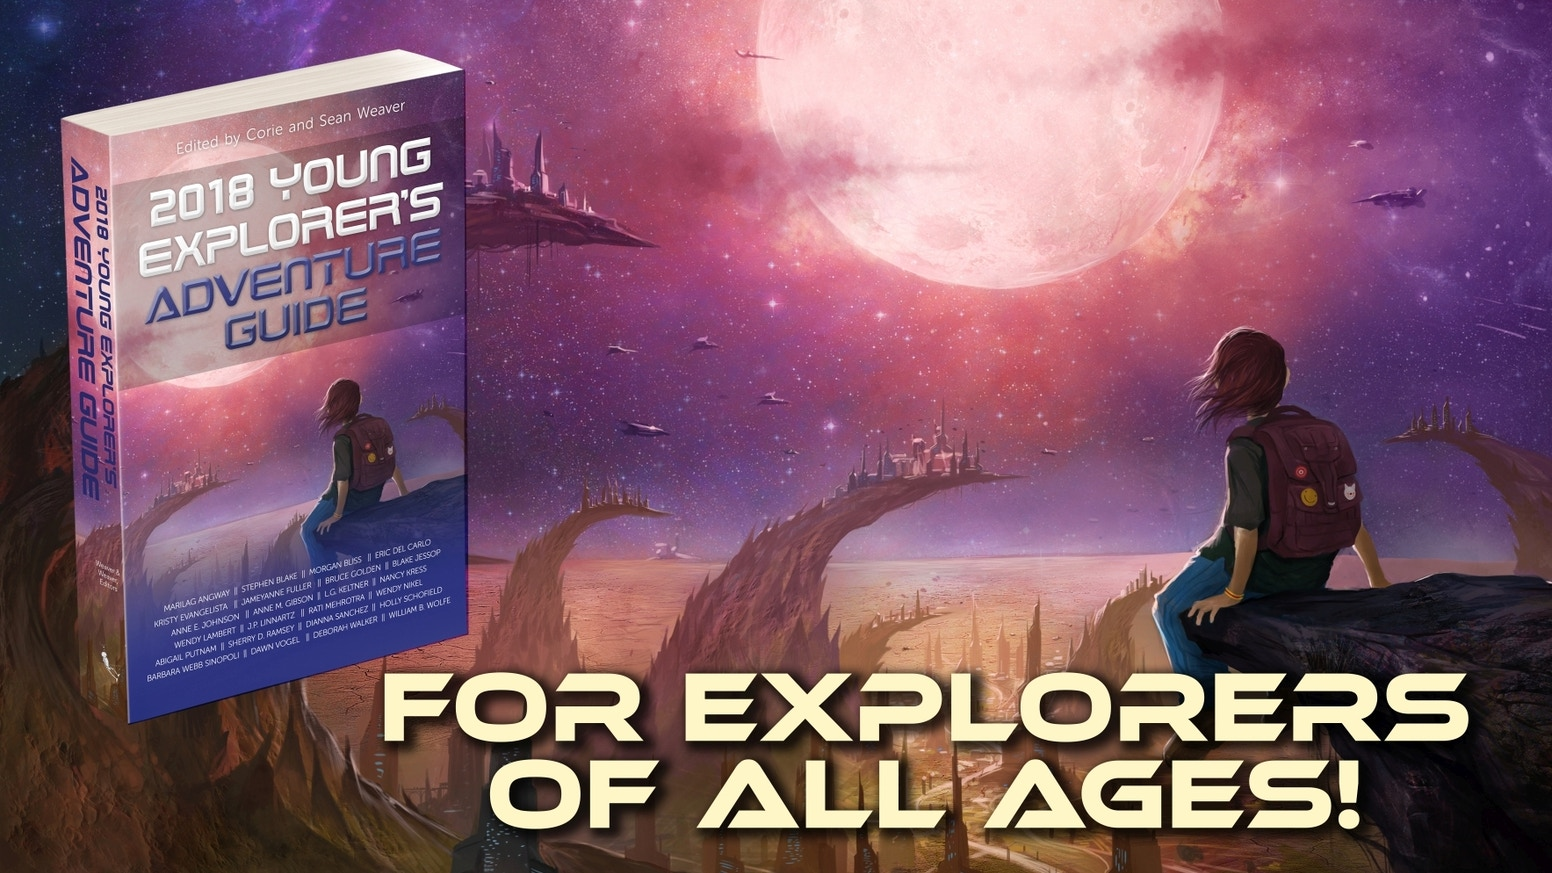 Science fiction anthology for explorers of all ages. Give the stars to a new generation with diversity, representation & great stories!